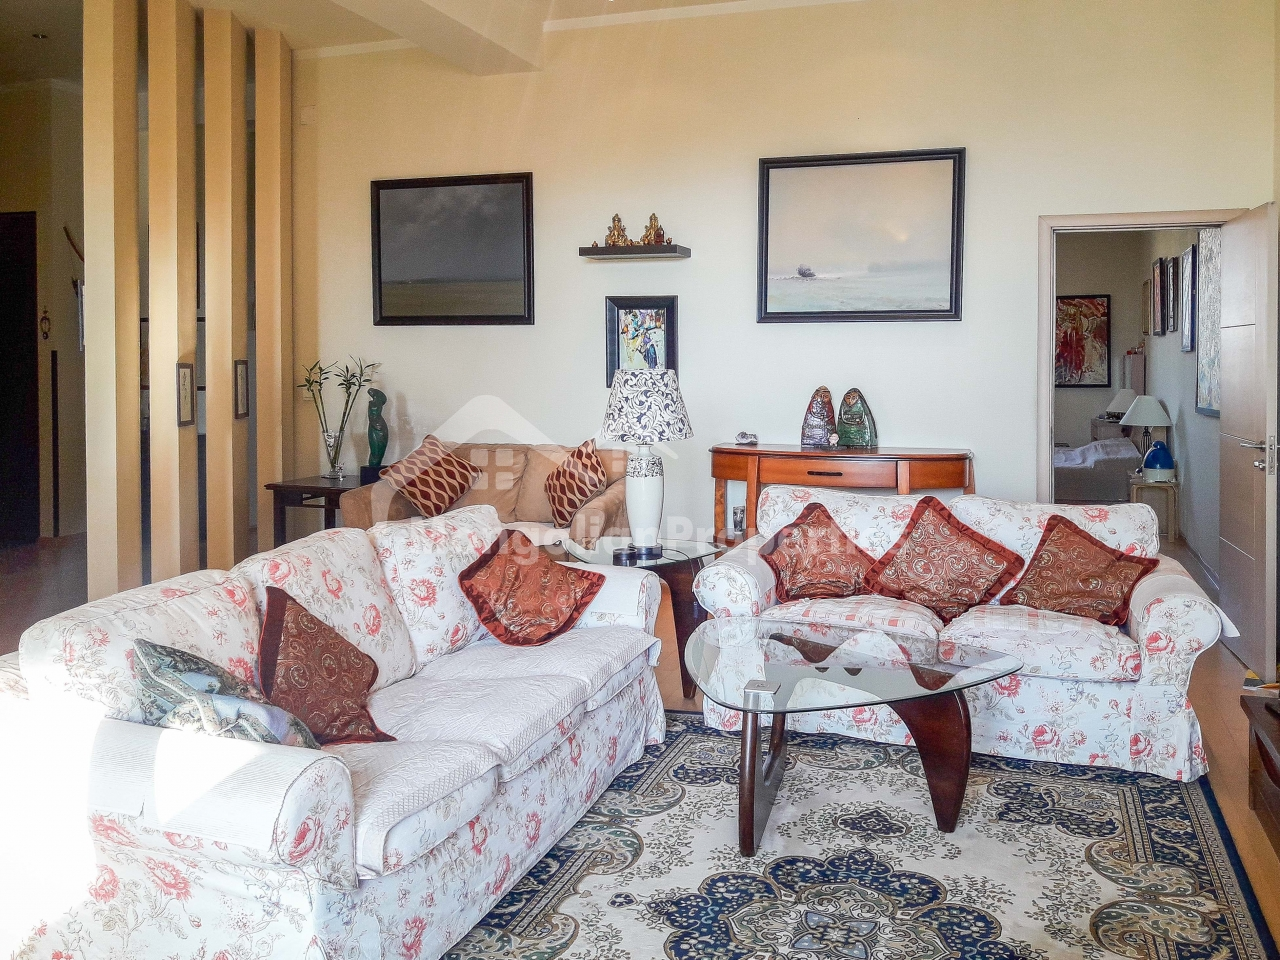 FOR SALE: Extremely high ceiling beautiful 3 bedroom apartment at regency